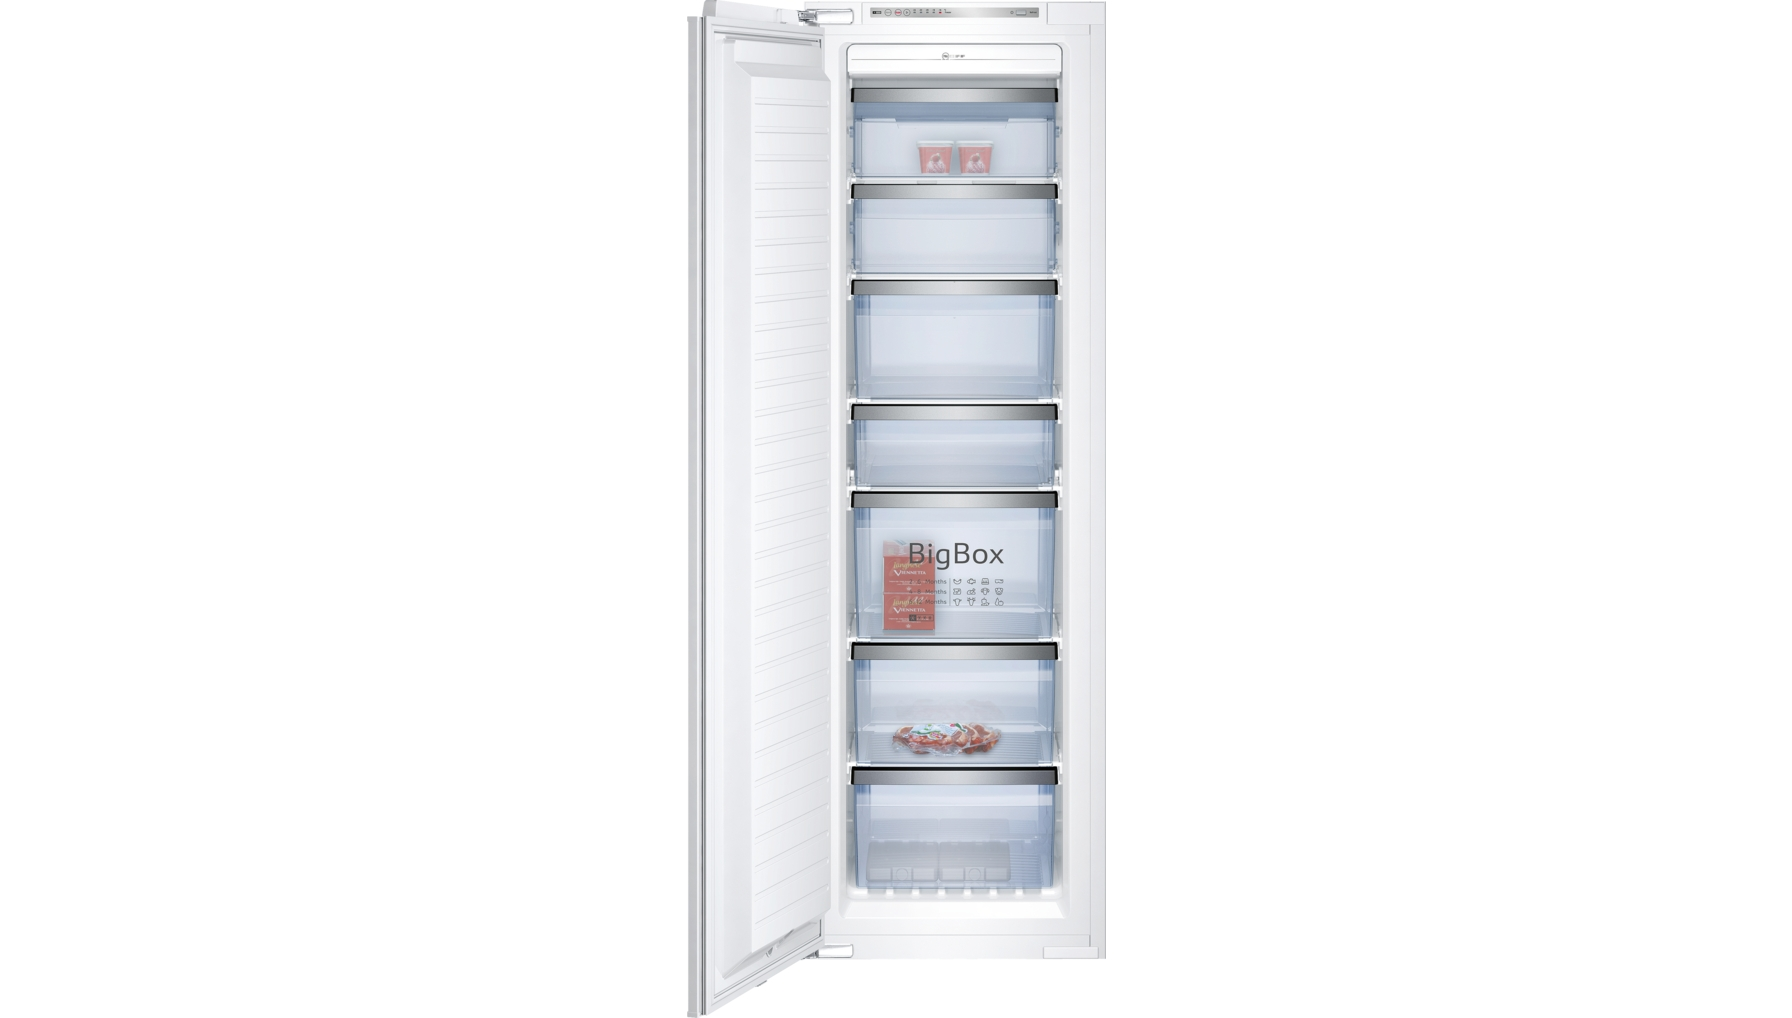 product showroom fridges and freezers freezers g4655x7gb. Black Bedroom Furniture Sets. Home Design Ideas